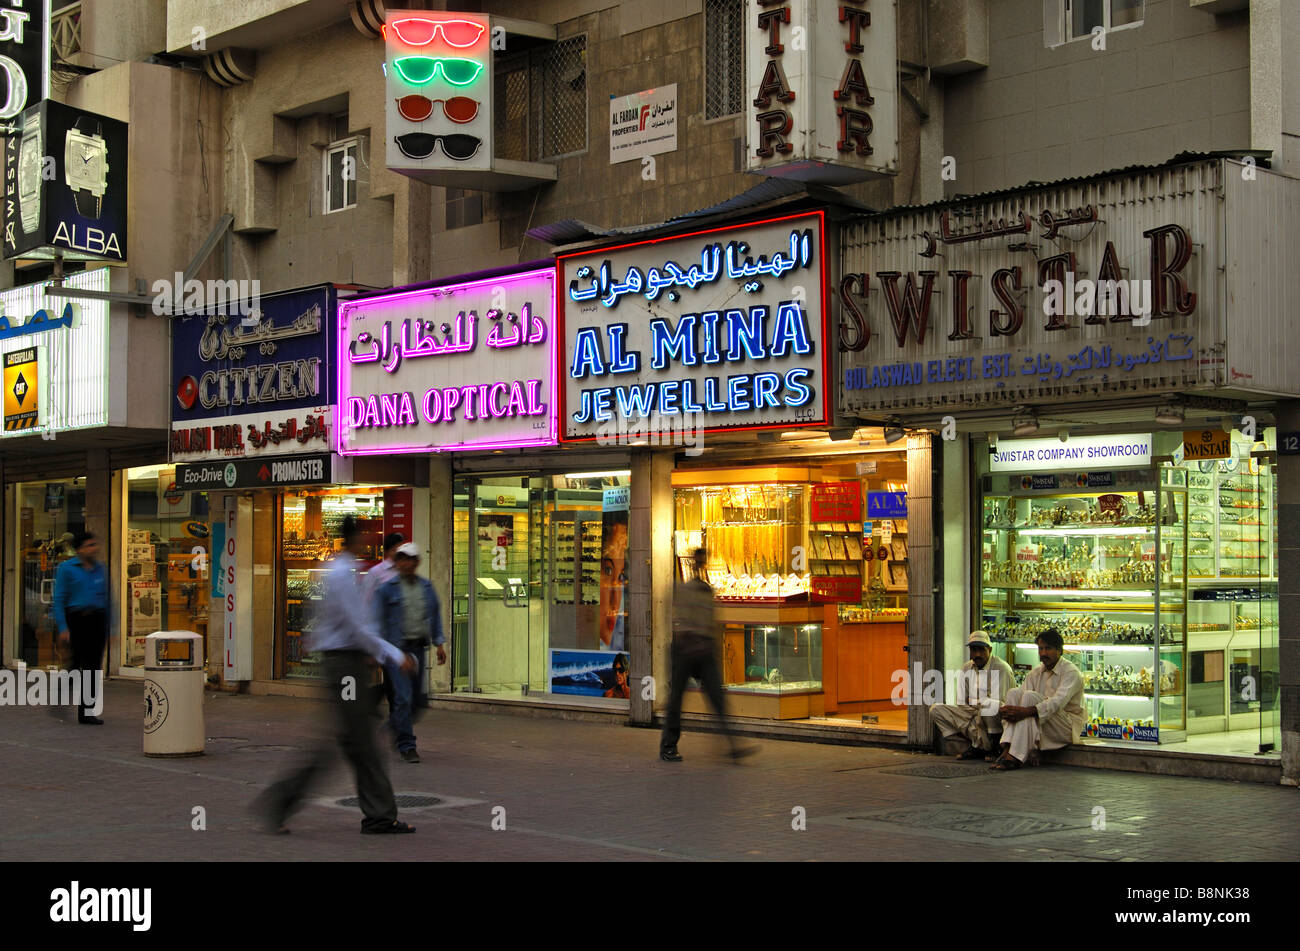 Evening time in a shopping street in the Old Town of Bur Dubai, Dubai, United Arab Emirates - Stock Image